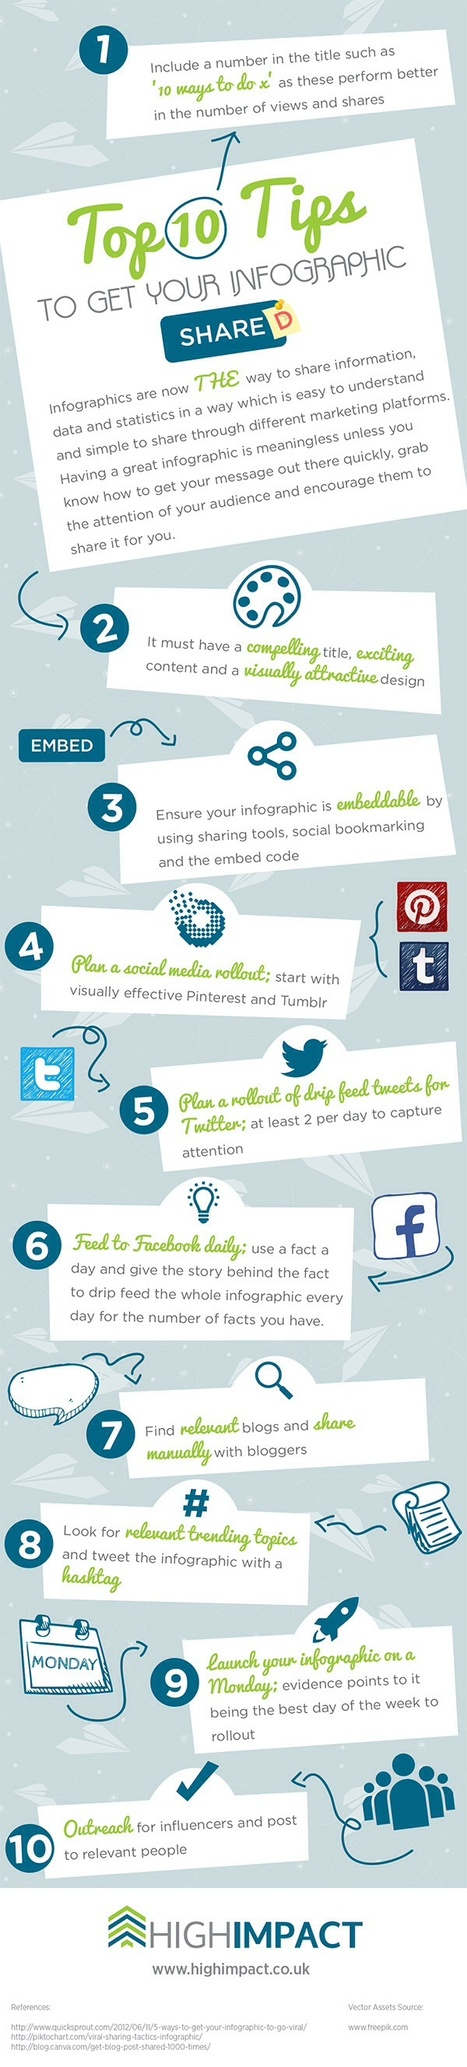 10 Tips to Get Your Infographic Shared on Thousands of Websites | MarketingHits | Scoop.it